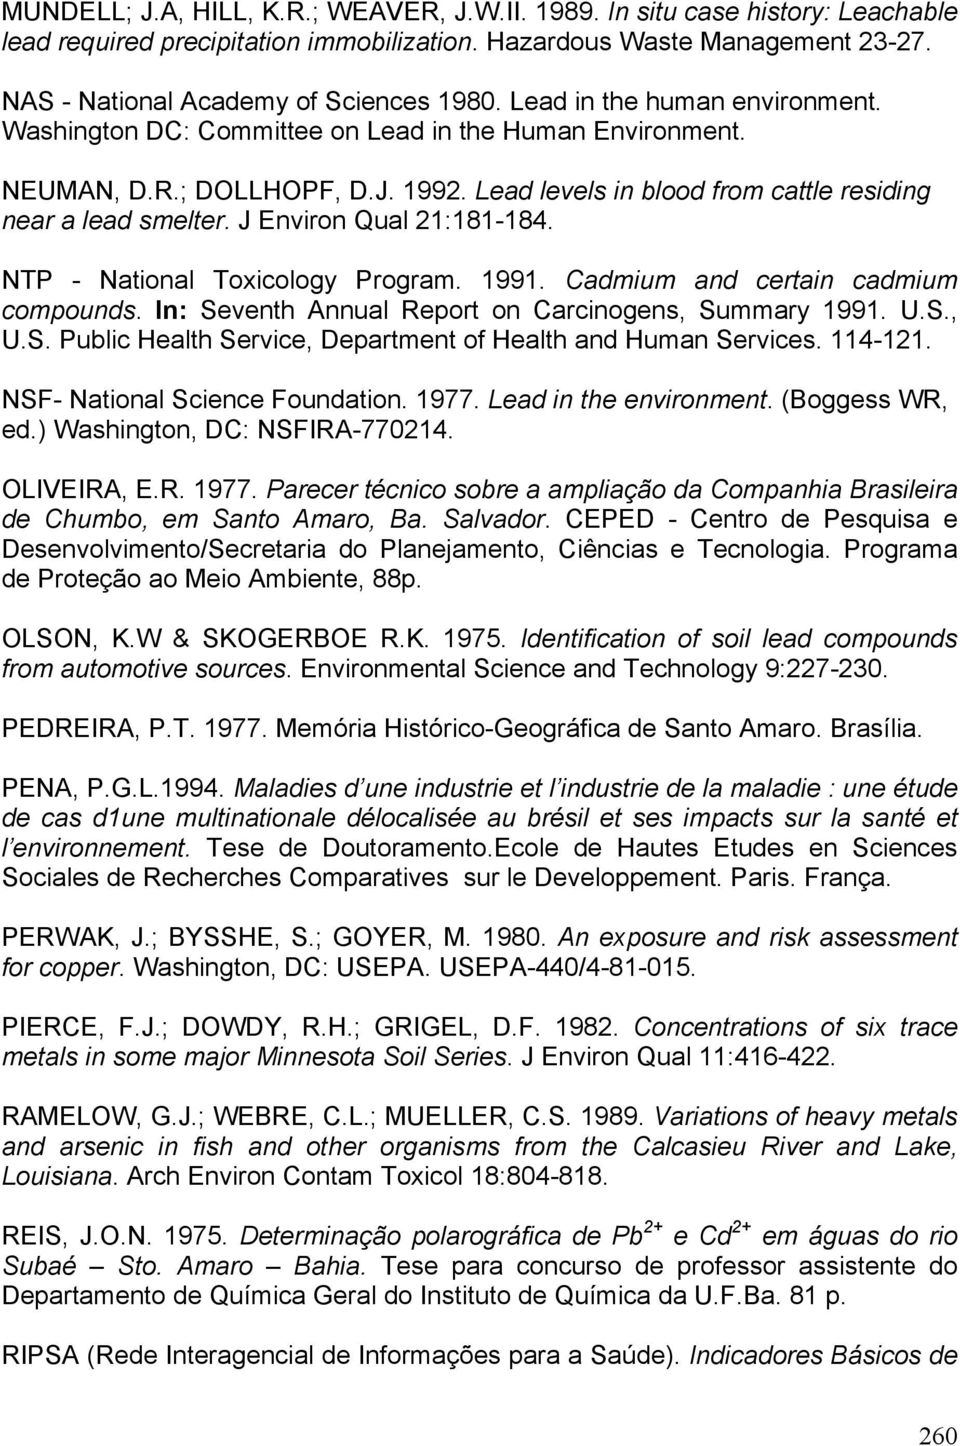 J Environ Qual 21:181-184. NTP - National Toxicology Program. 1991. Cadmium and certain cadmium compounds. In: Seventh Annual Report on Carcinogens, Summary 1991. U.S., U.S. Public Health Service, Department of Health and Human Services.